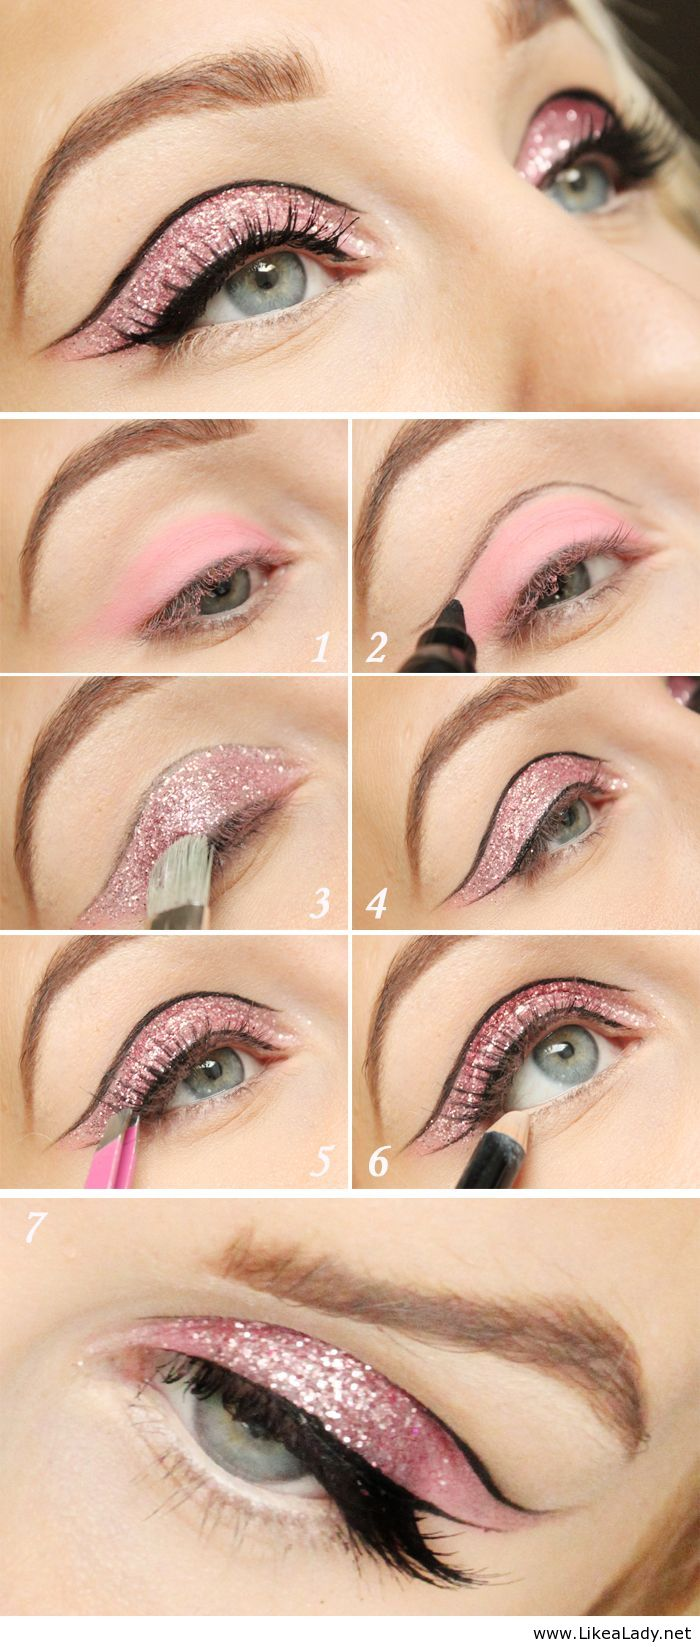 10 Stunning Eye Makeup For Your Next Party Pretty Designs